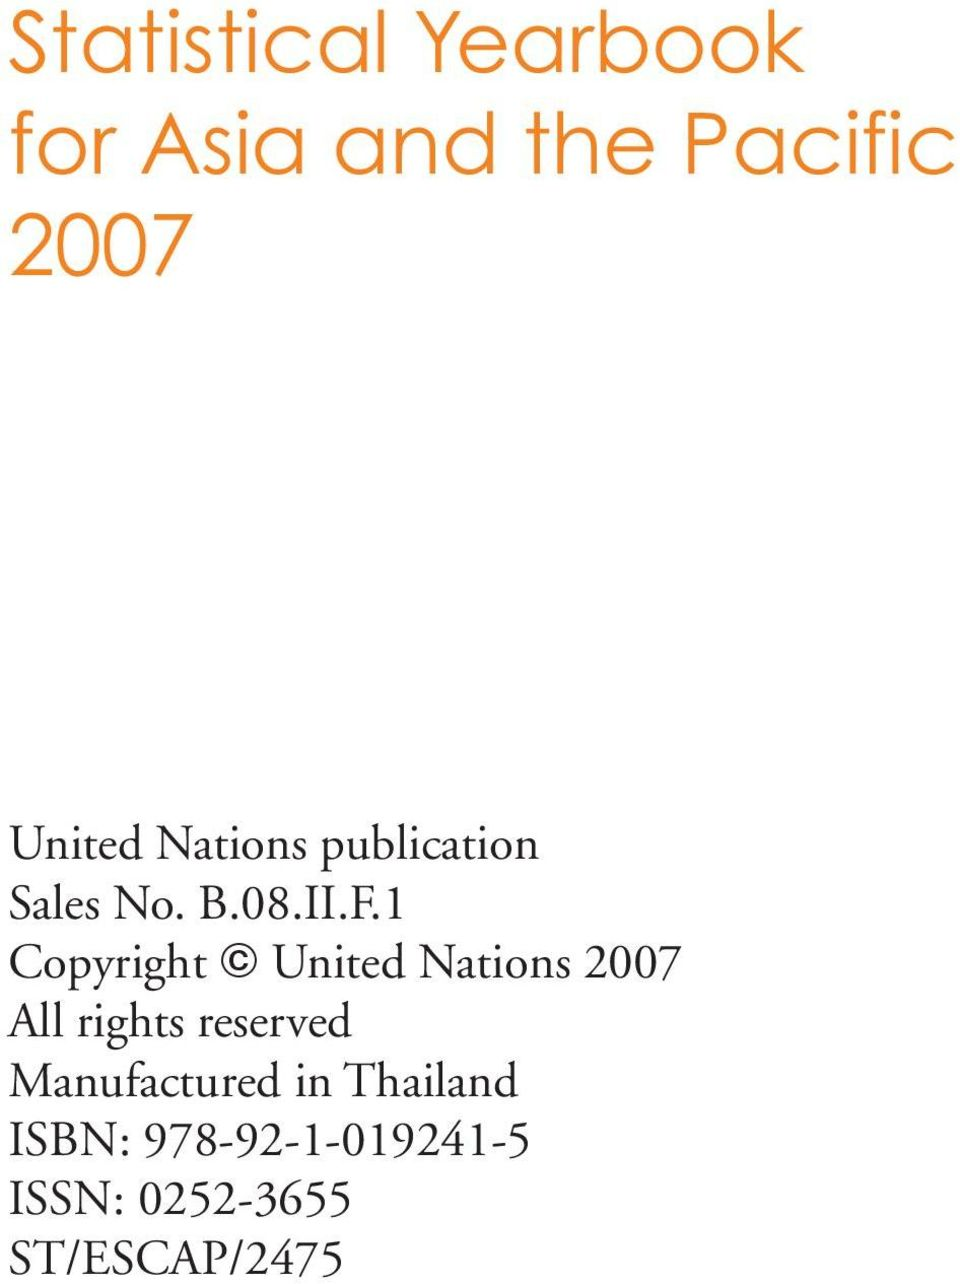 1 Copyright United Nations 2007 All rights reserved